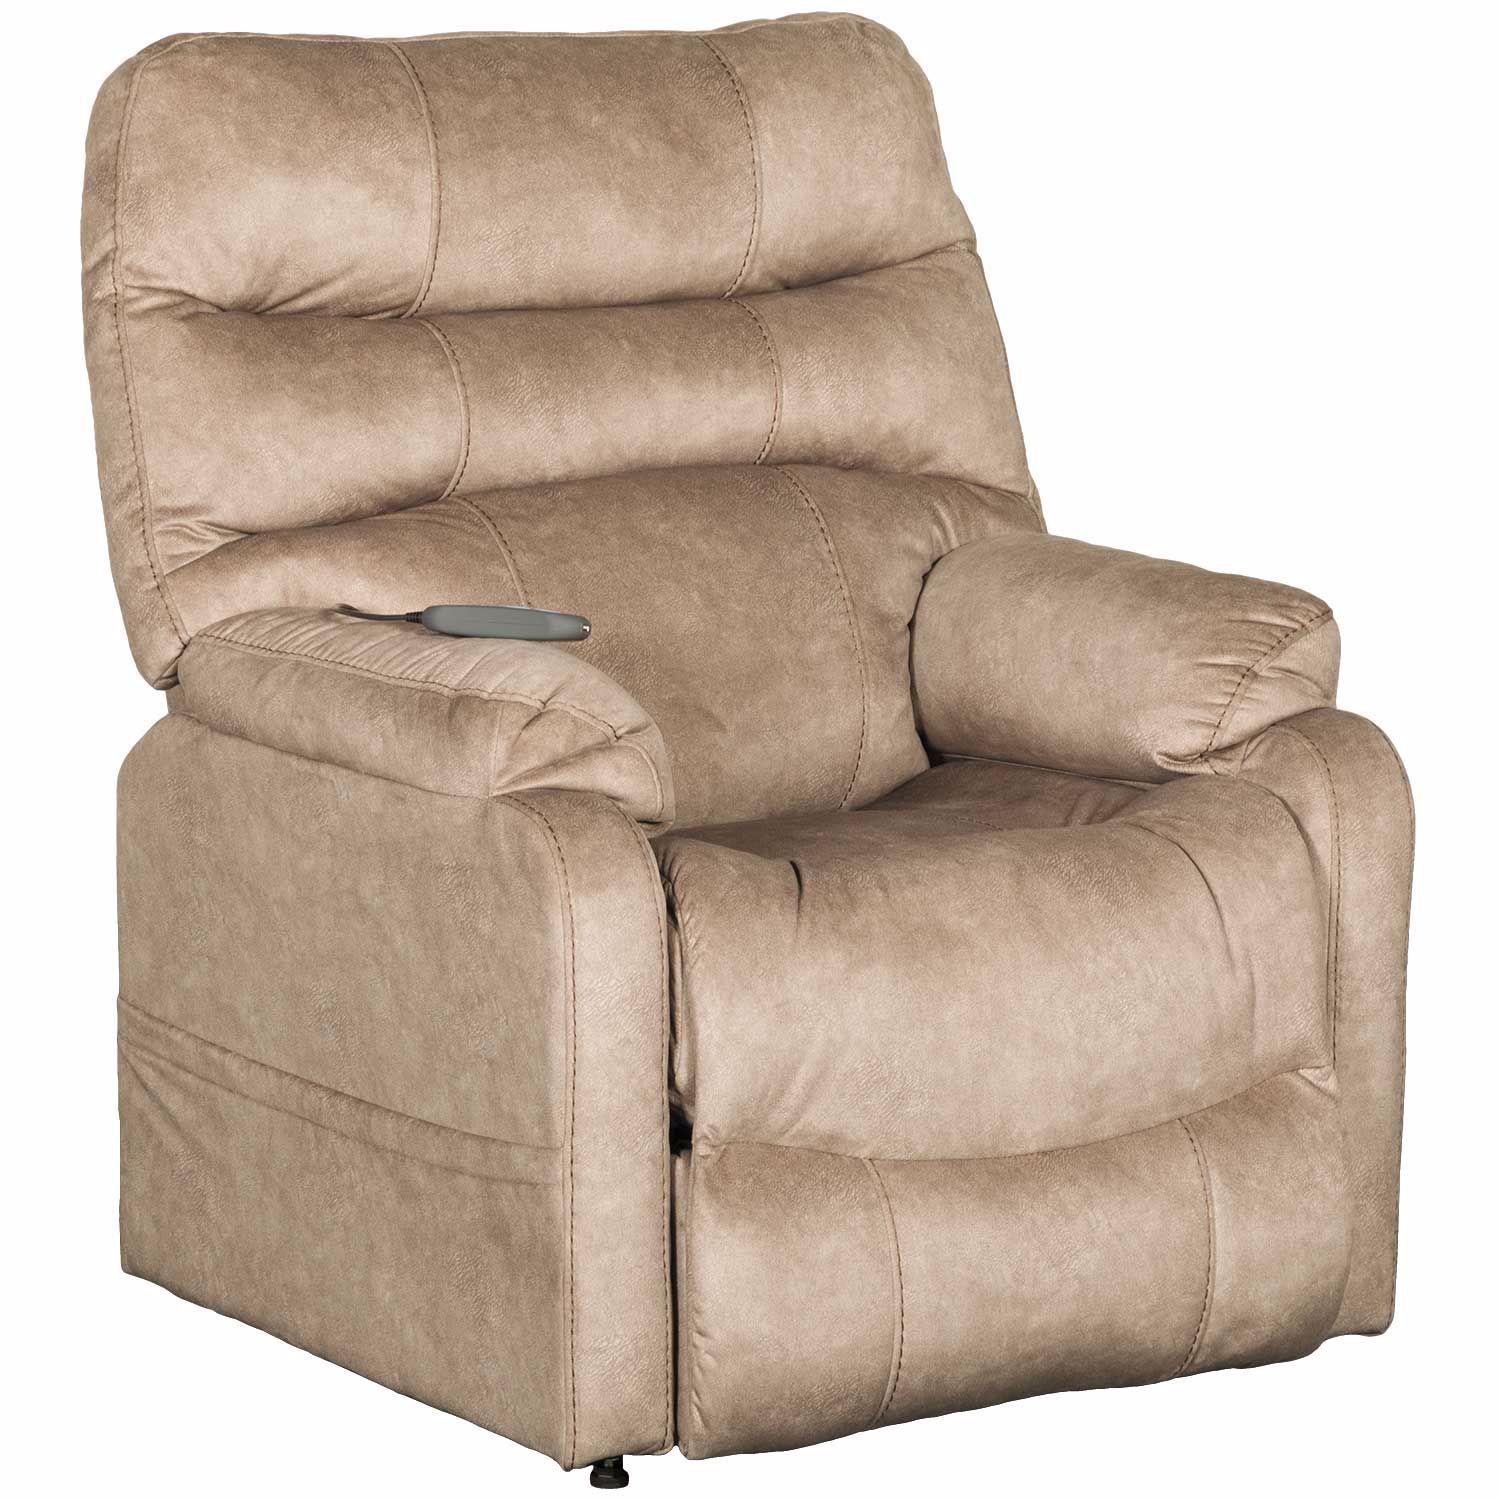 Picture of Buckley Beige Power Lift Chair